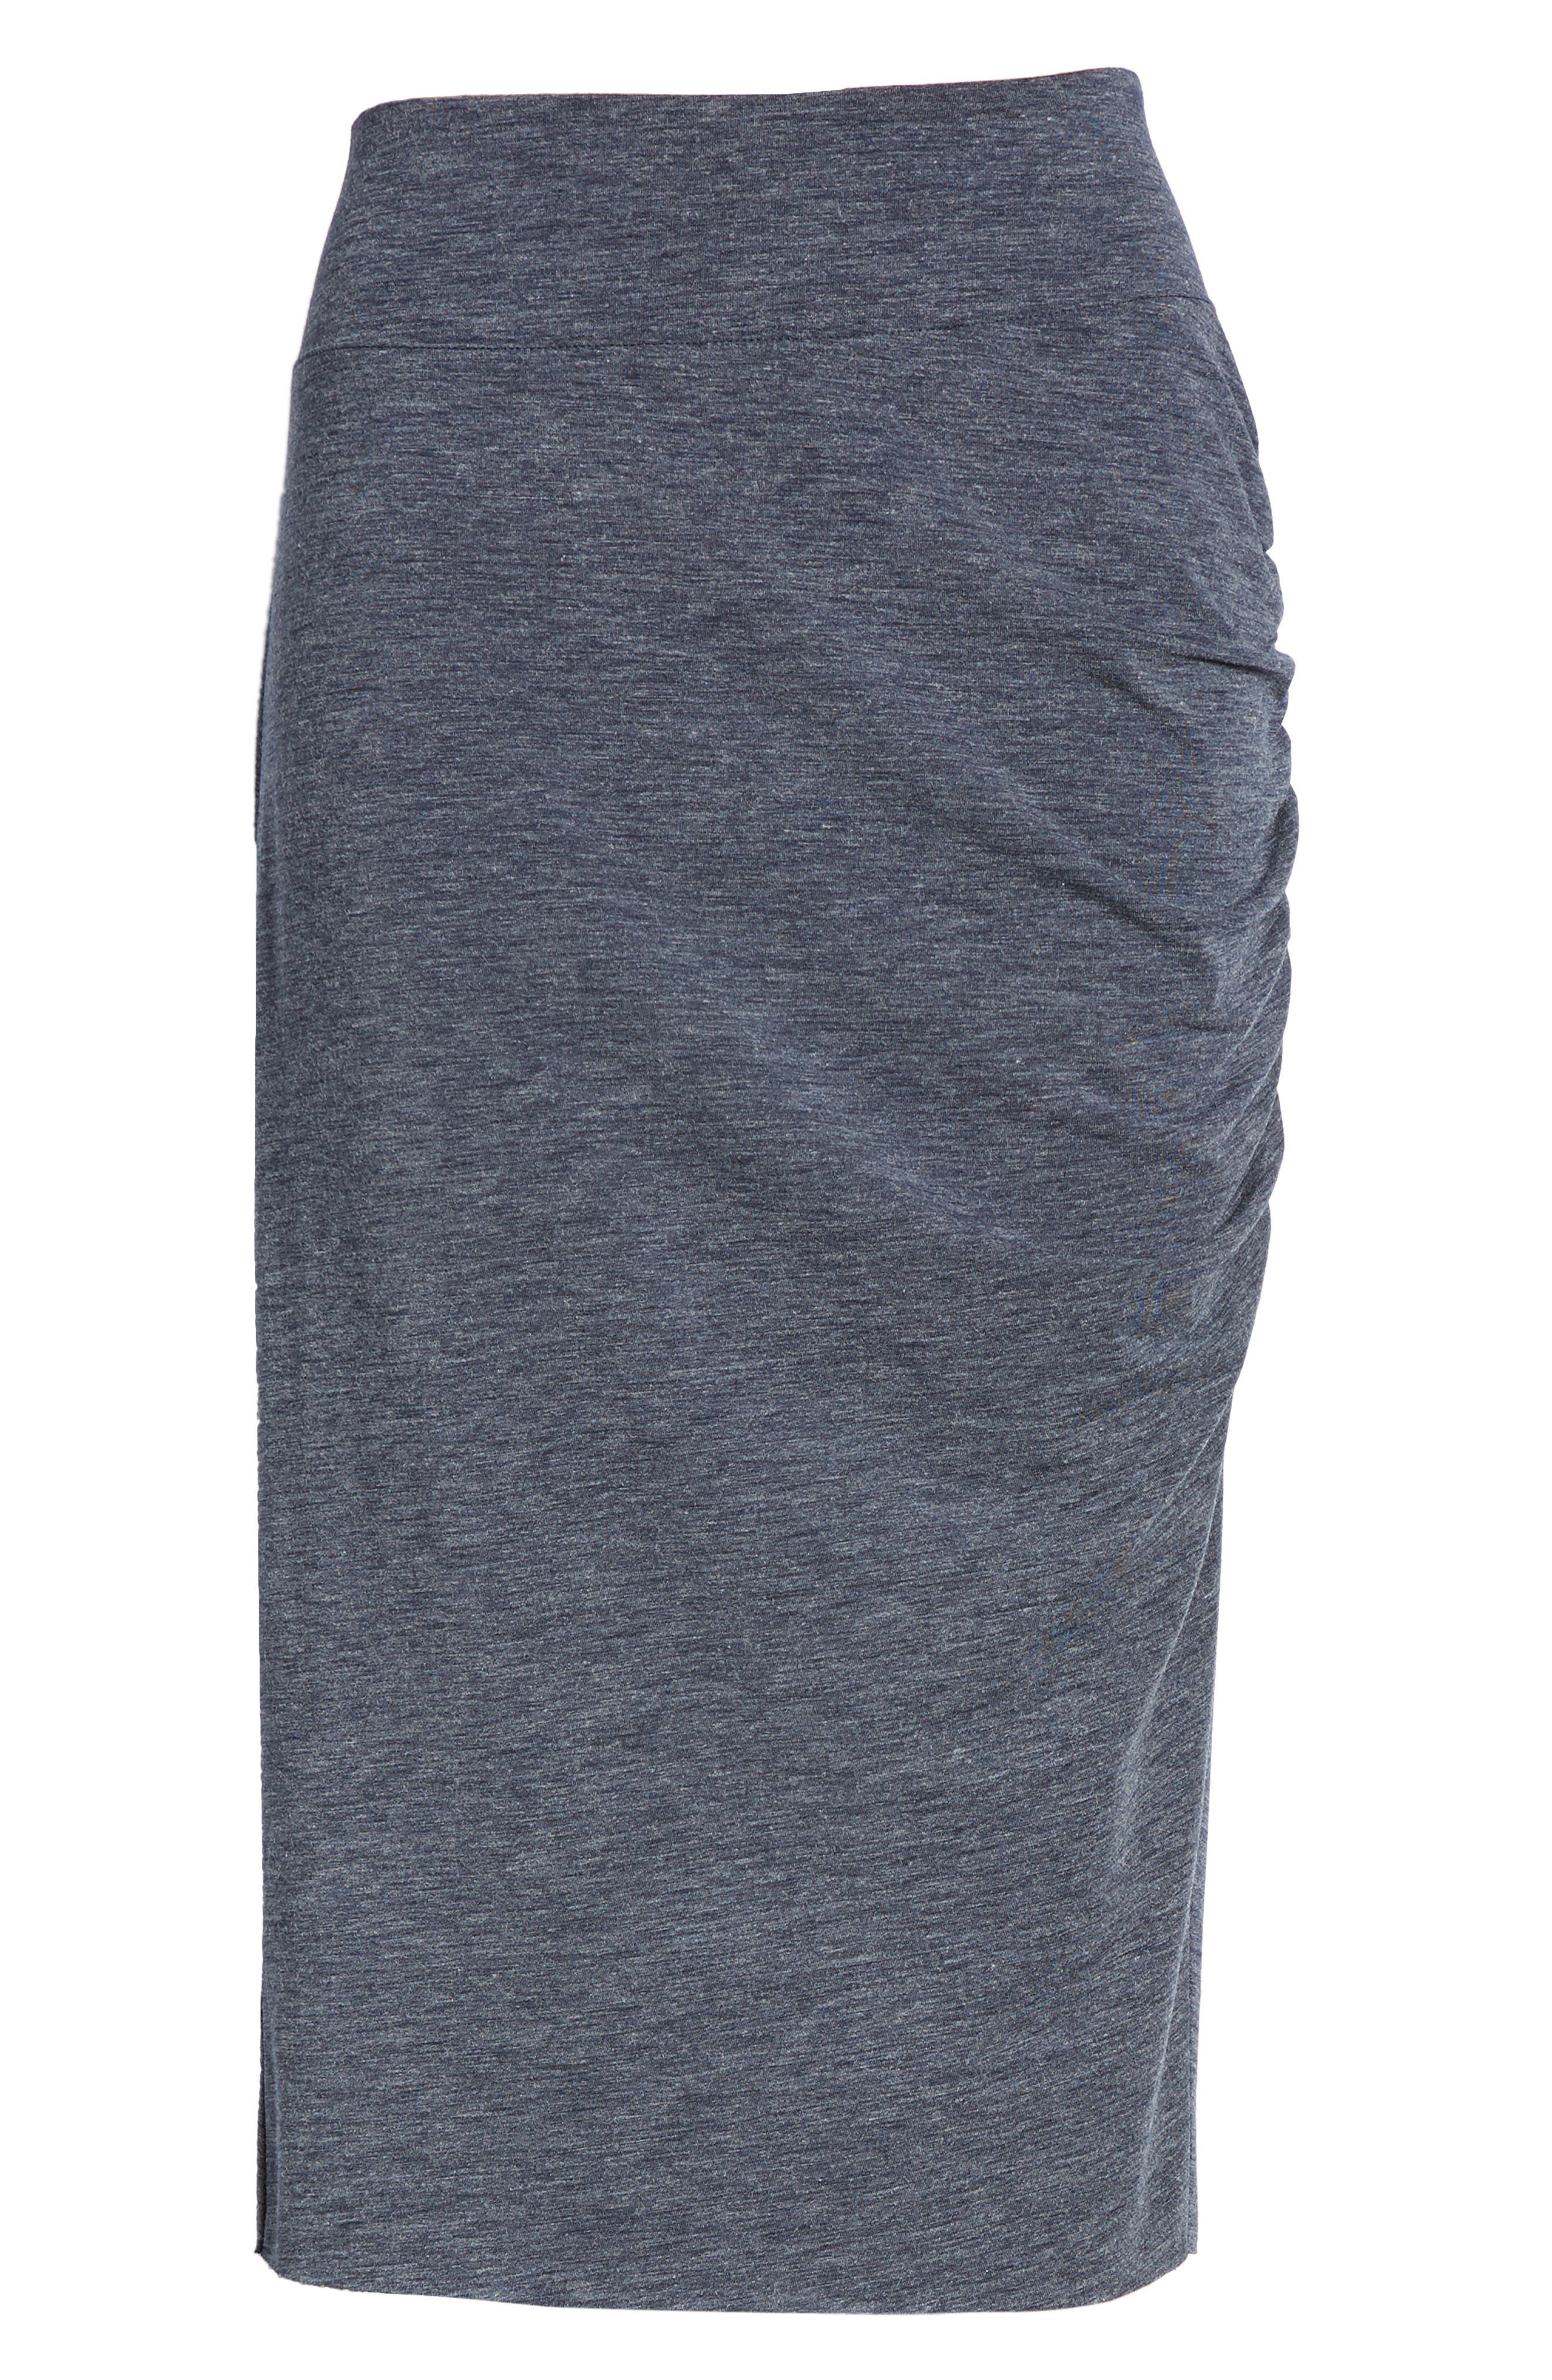 Ruched Knit Midi Skirt,                             Alternate thumbnail 12, color,